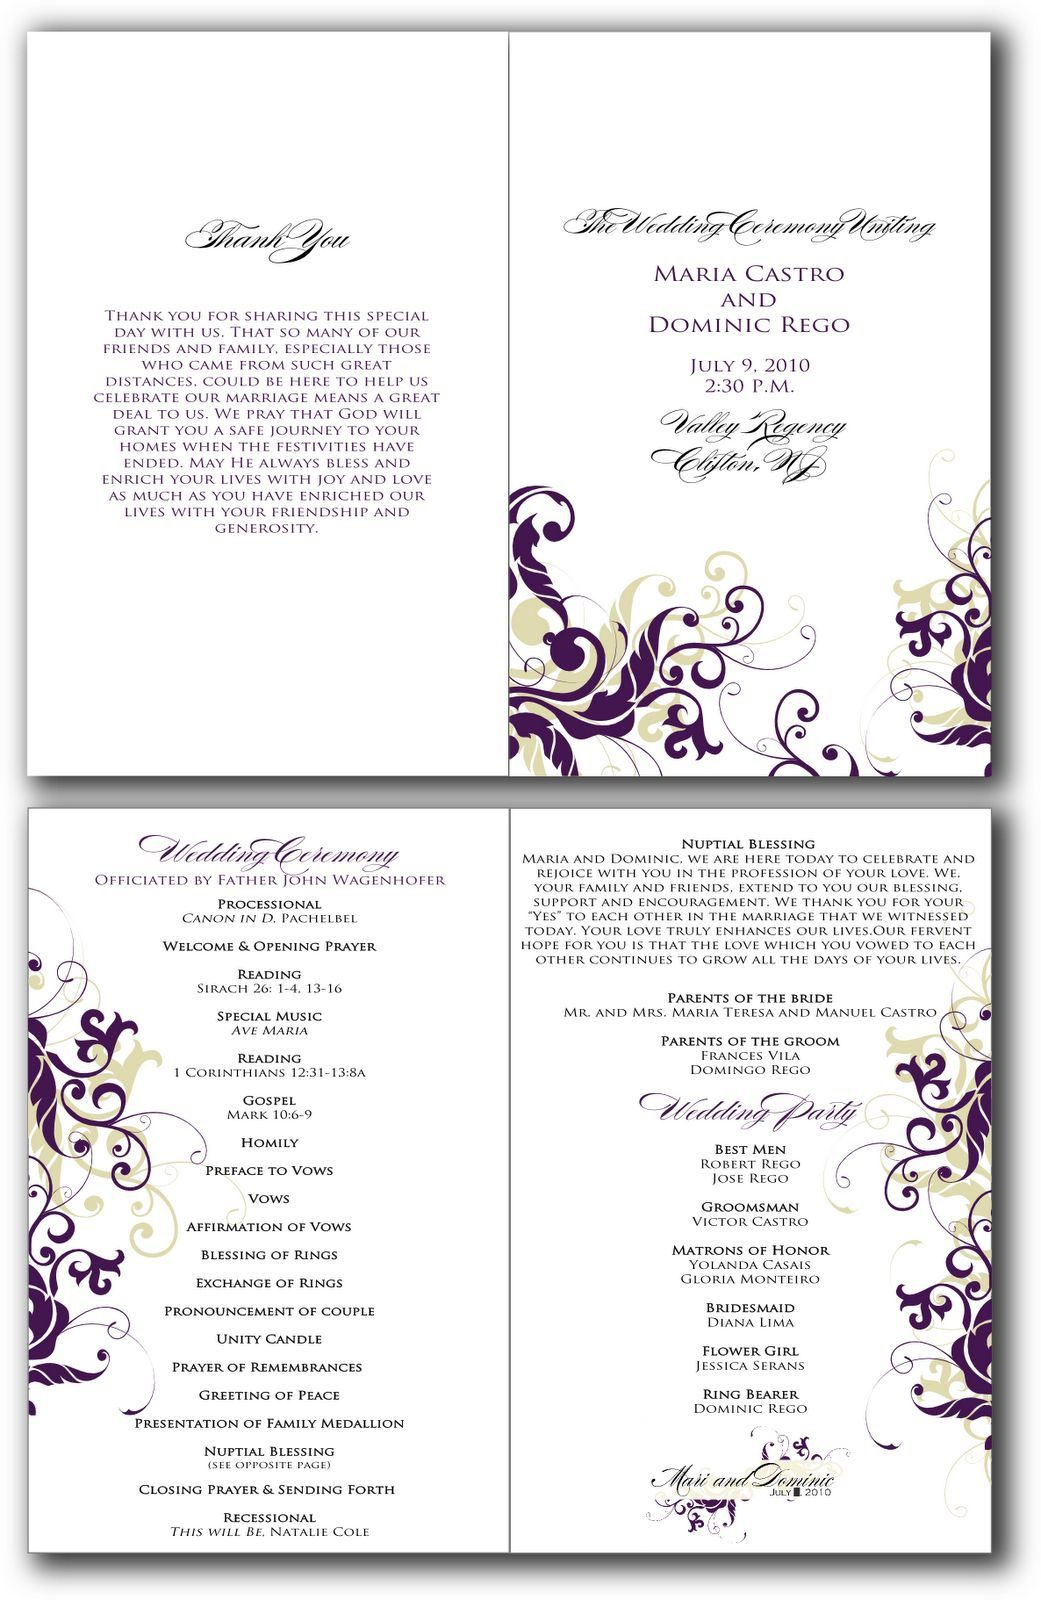 002 Impressive Free Church Program Template Design Concept Full